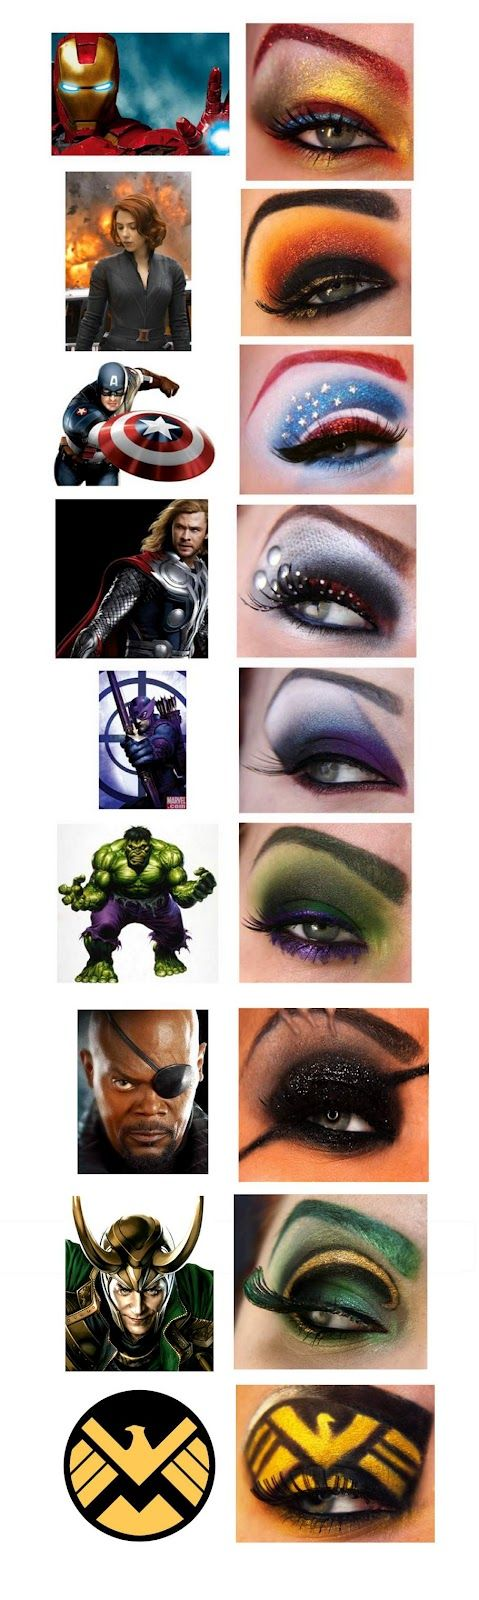 Dressing up as a #superhero this Halloween?  Check out these #Avengers inspired eye make-up designs. #makeup #halloween